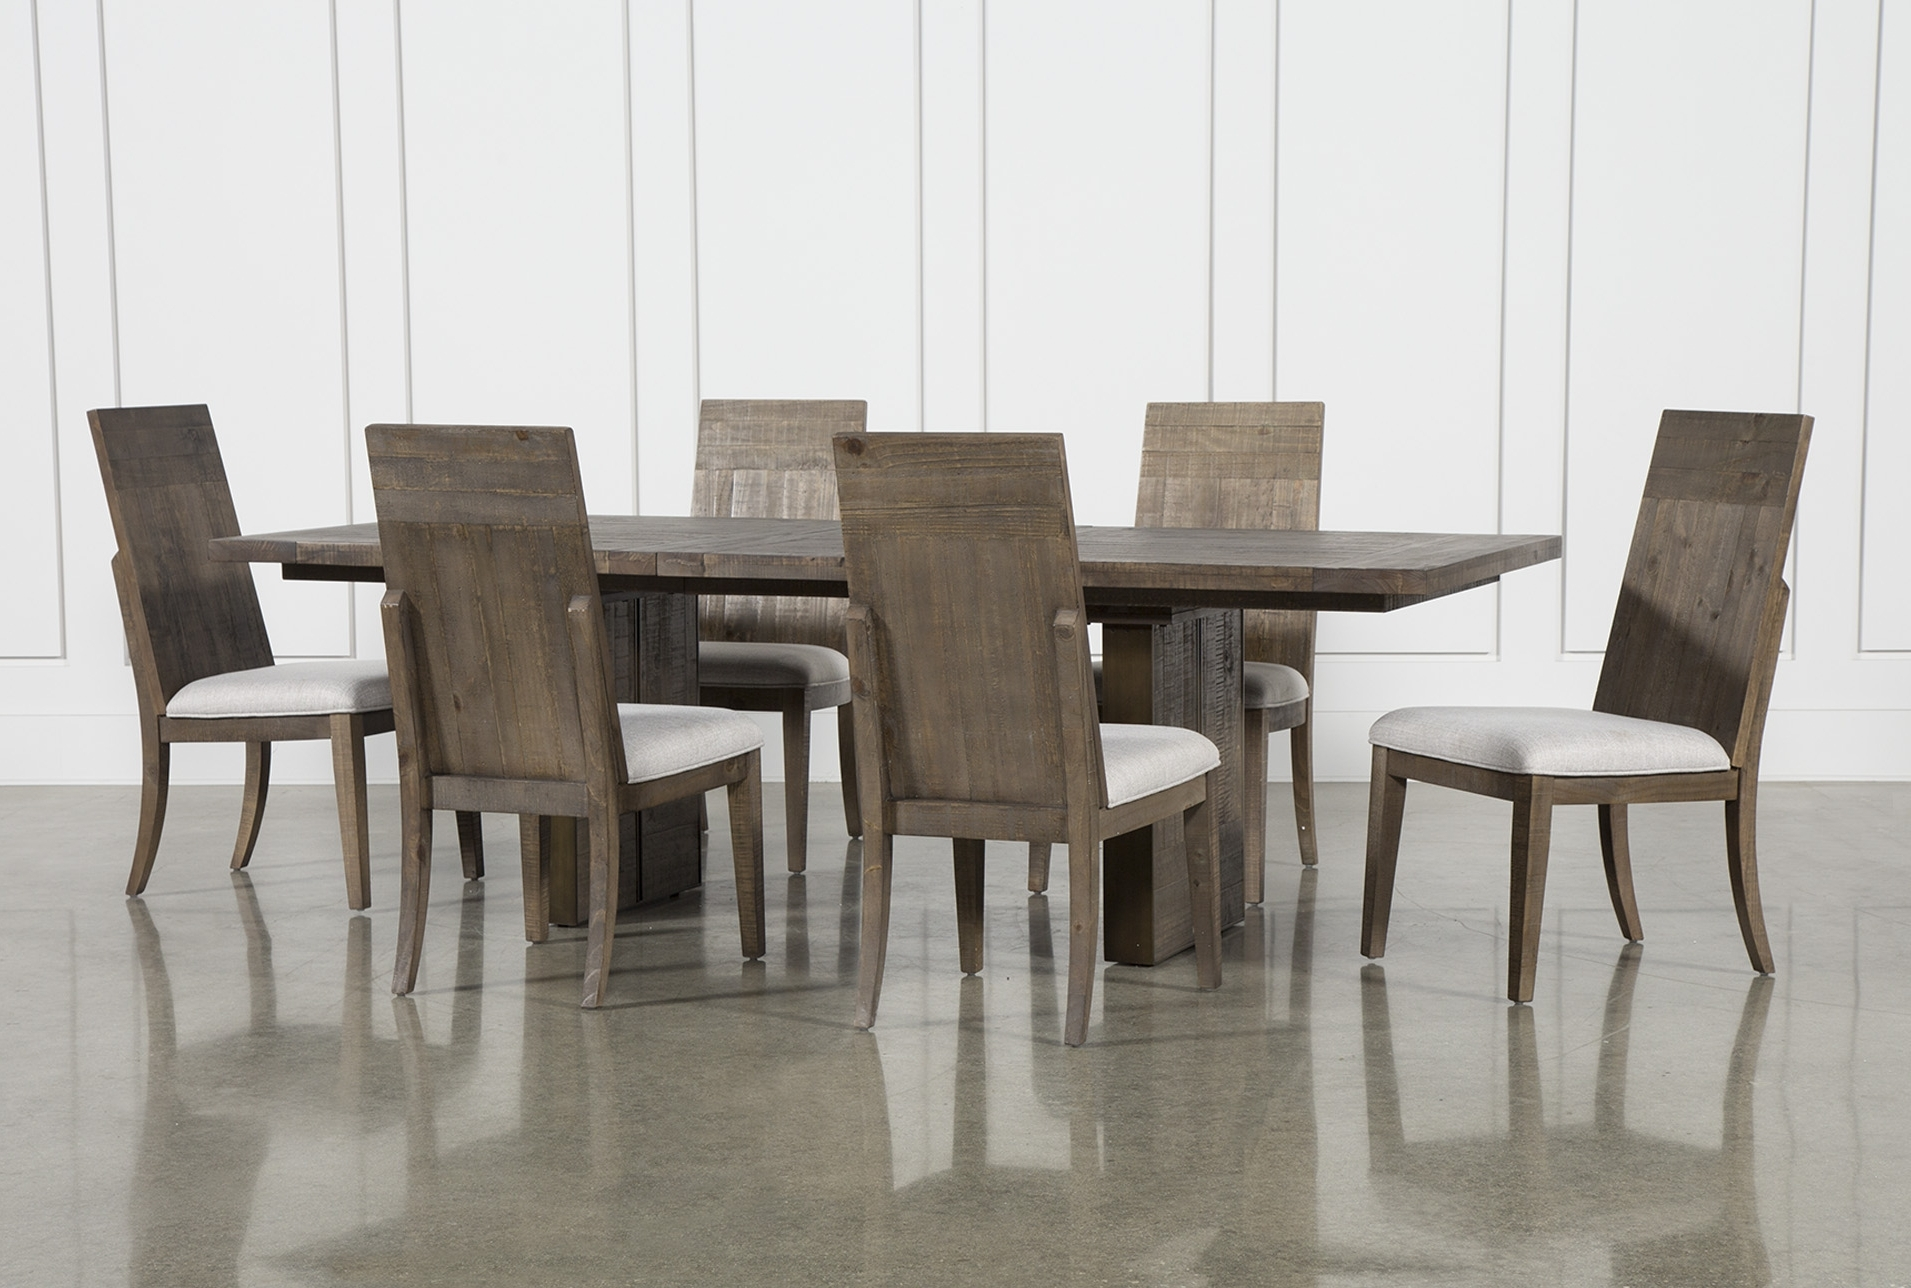 Most Recently Released Chandler Fabric Side Chair Intended For Candice Ii 7 Piece Extension Rectangular Dining Sets With Slat Back Side Chairs (View 8 of 25)